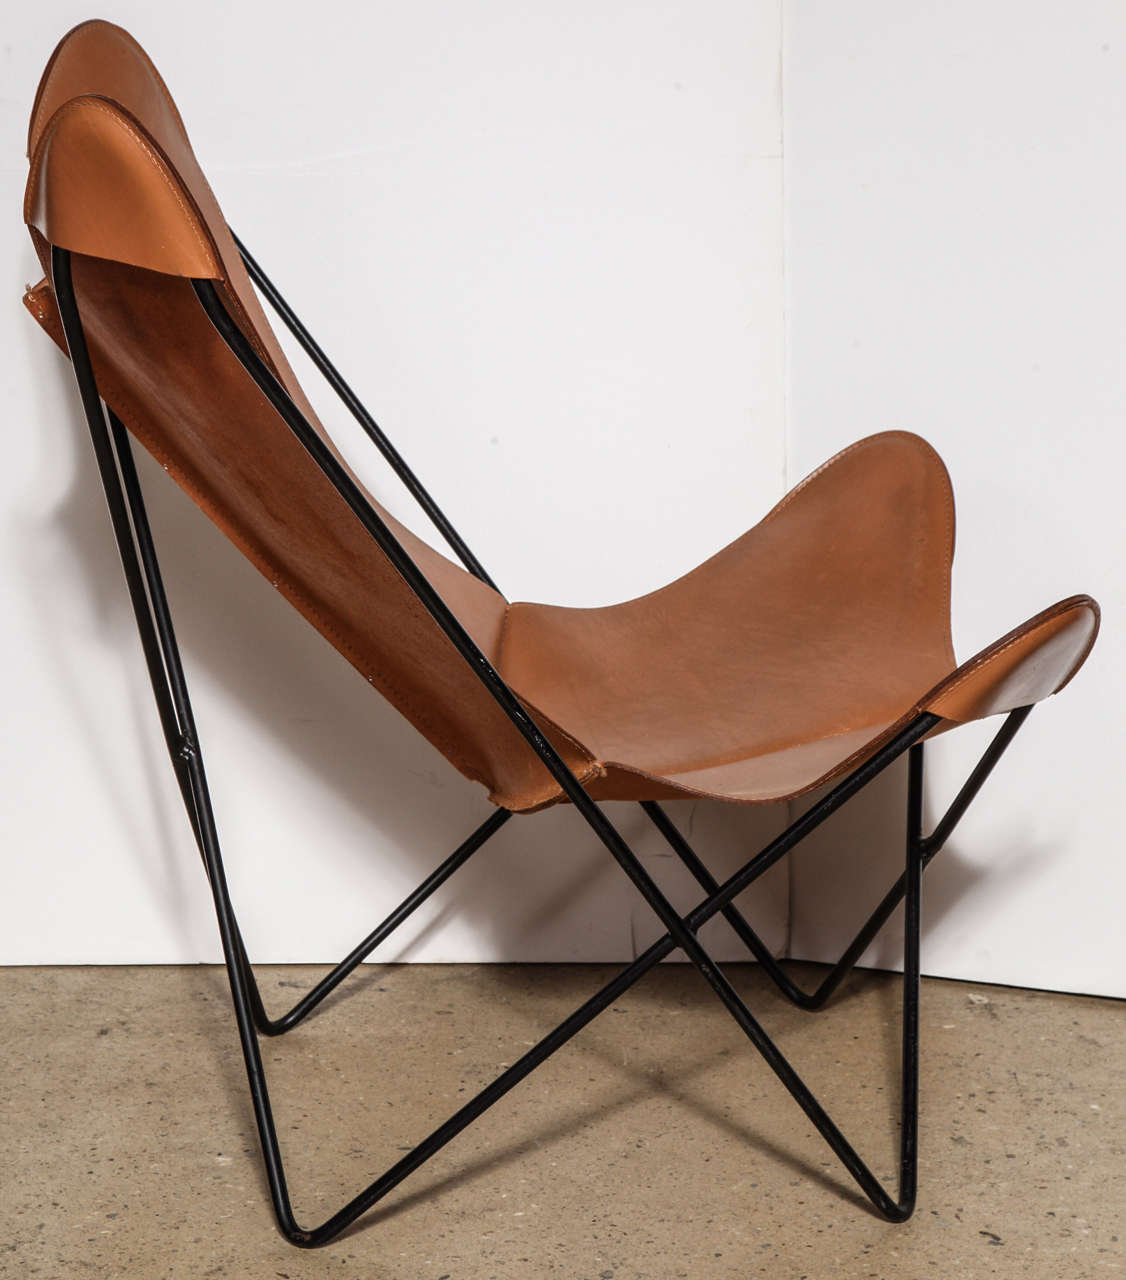 leather chair modern eddie bauer high chairs single knoll style hardoy butterfly at 1stdibs argentine for sale